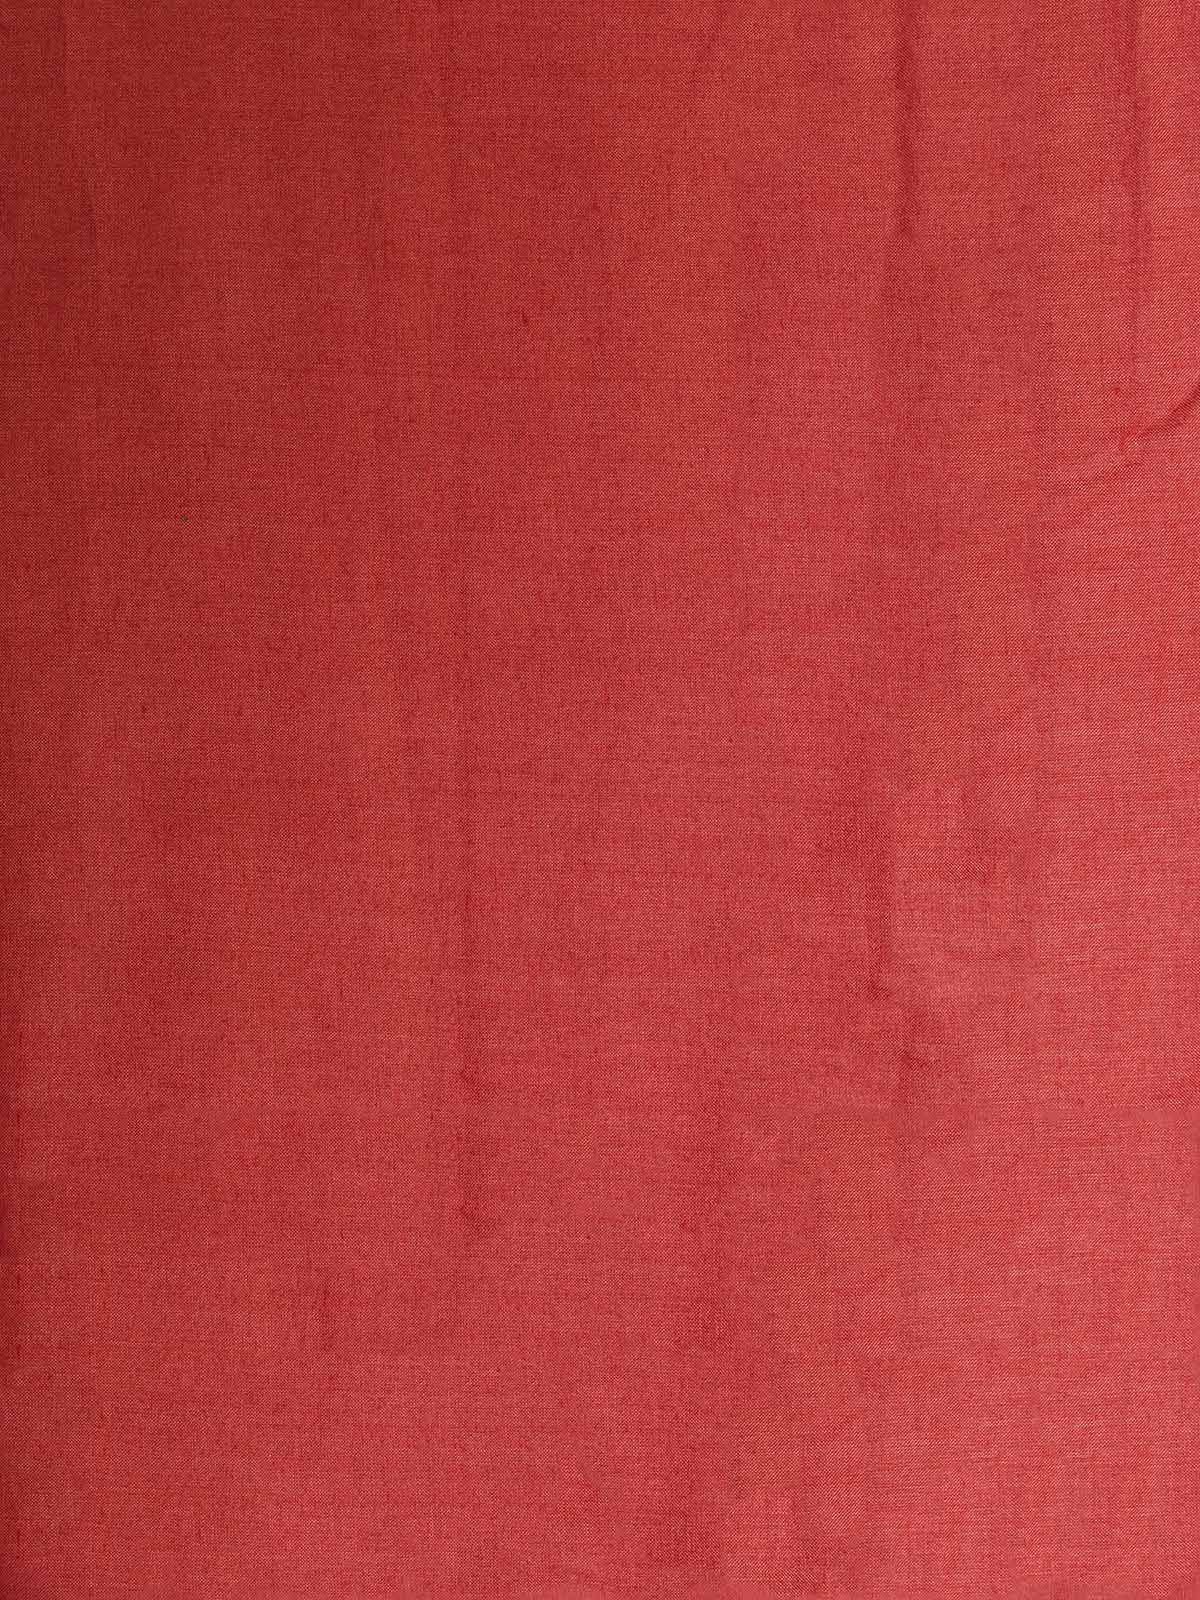 Light Red Cotton Silk Fabric